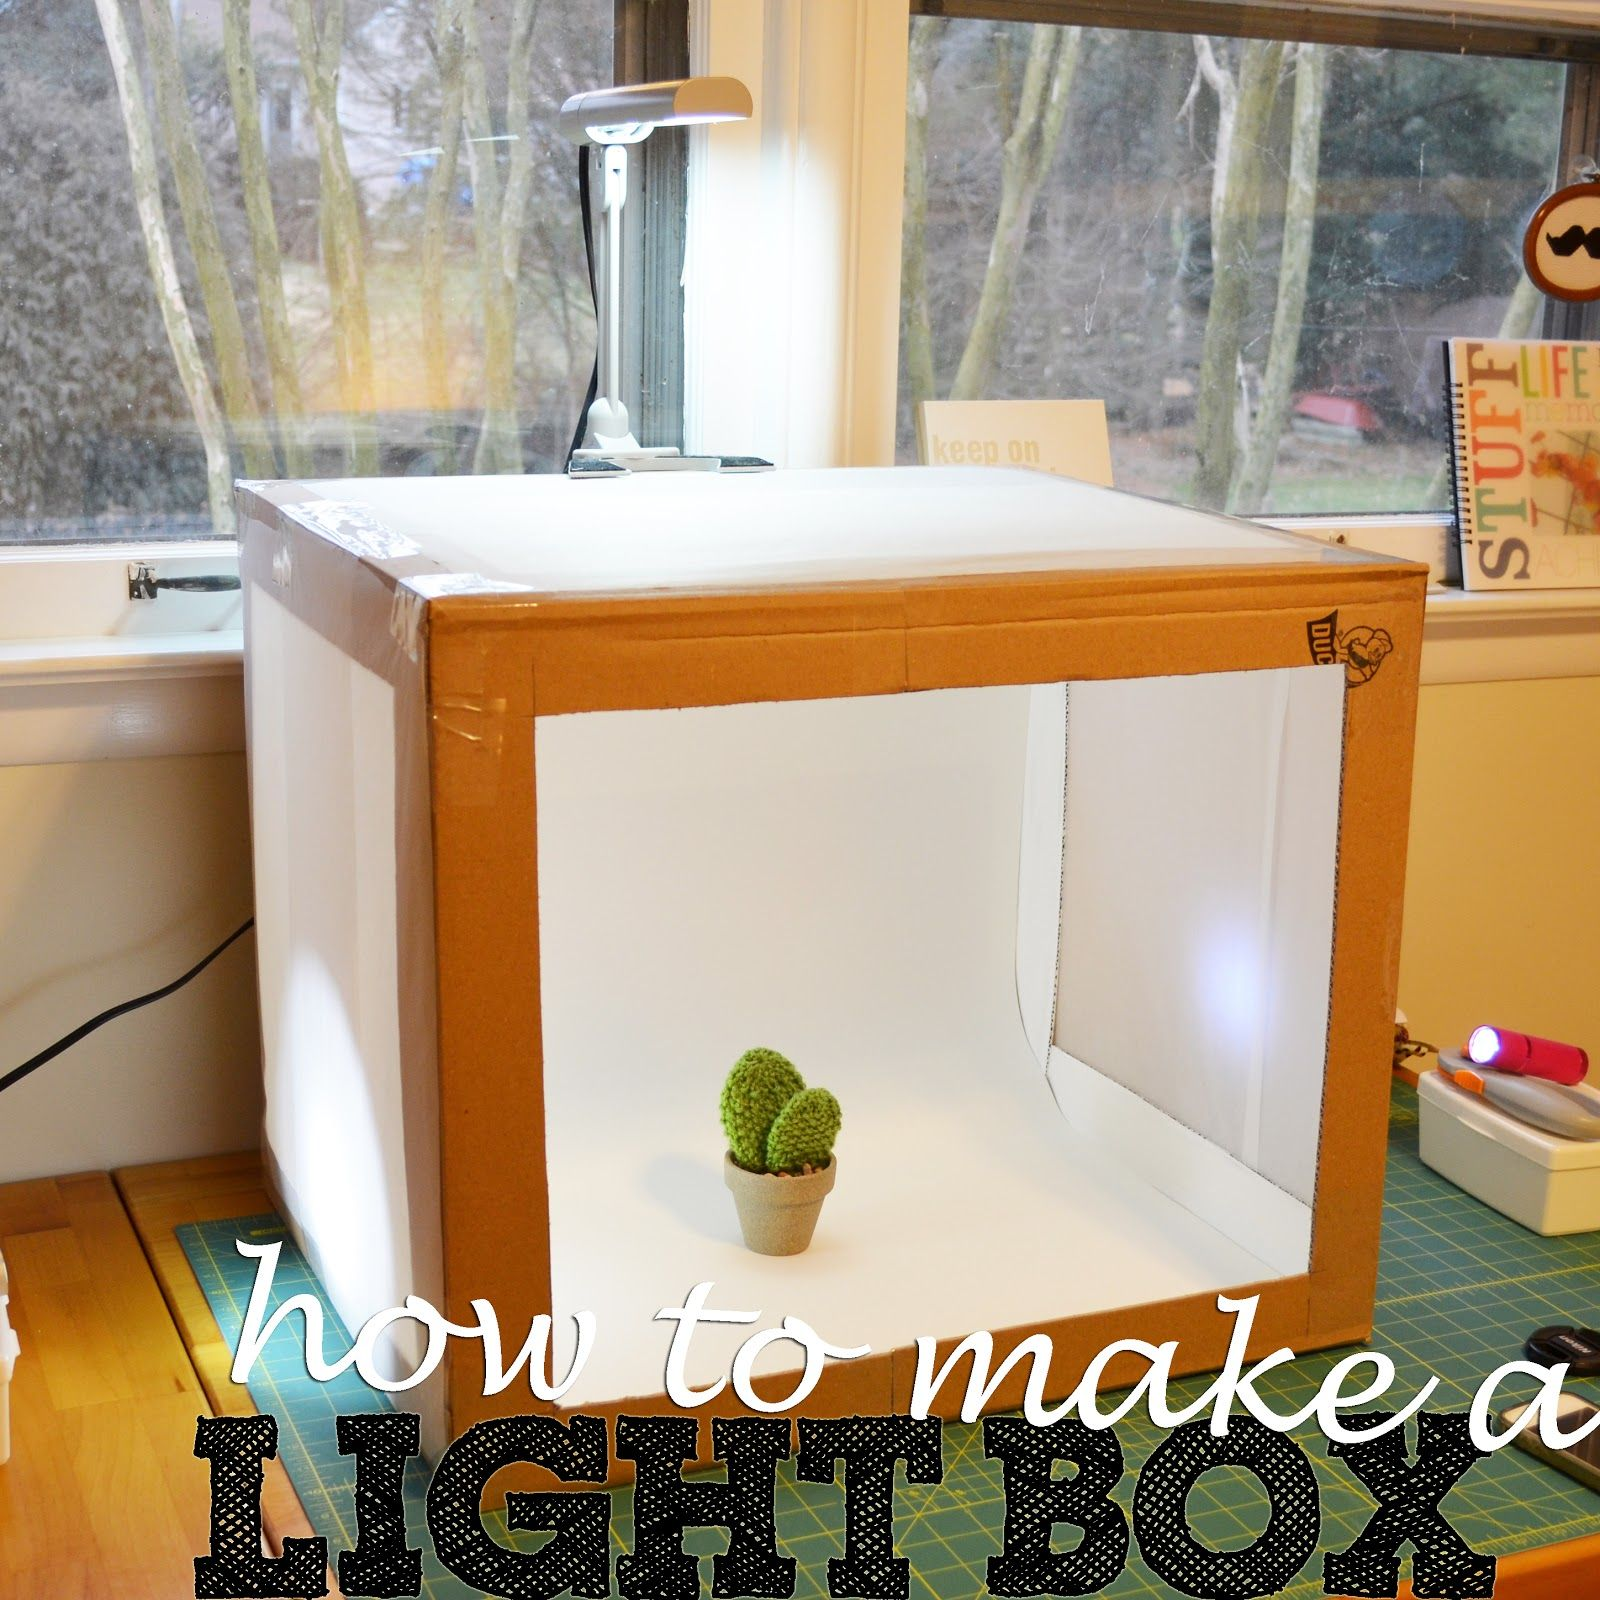 Photo light box · DIY Photo Lightbox Tutorial : selfmade light tent - memphite.com